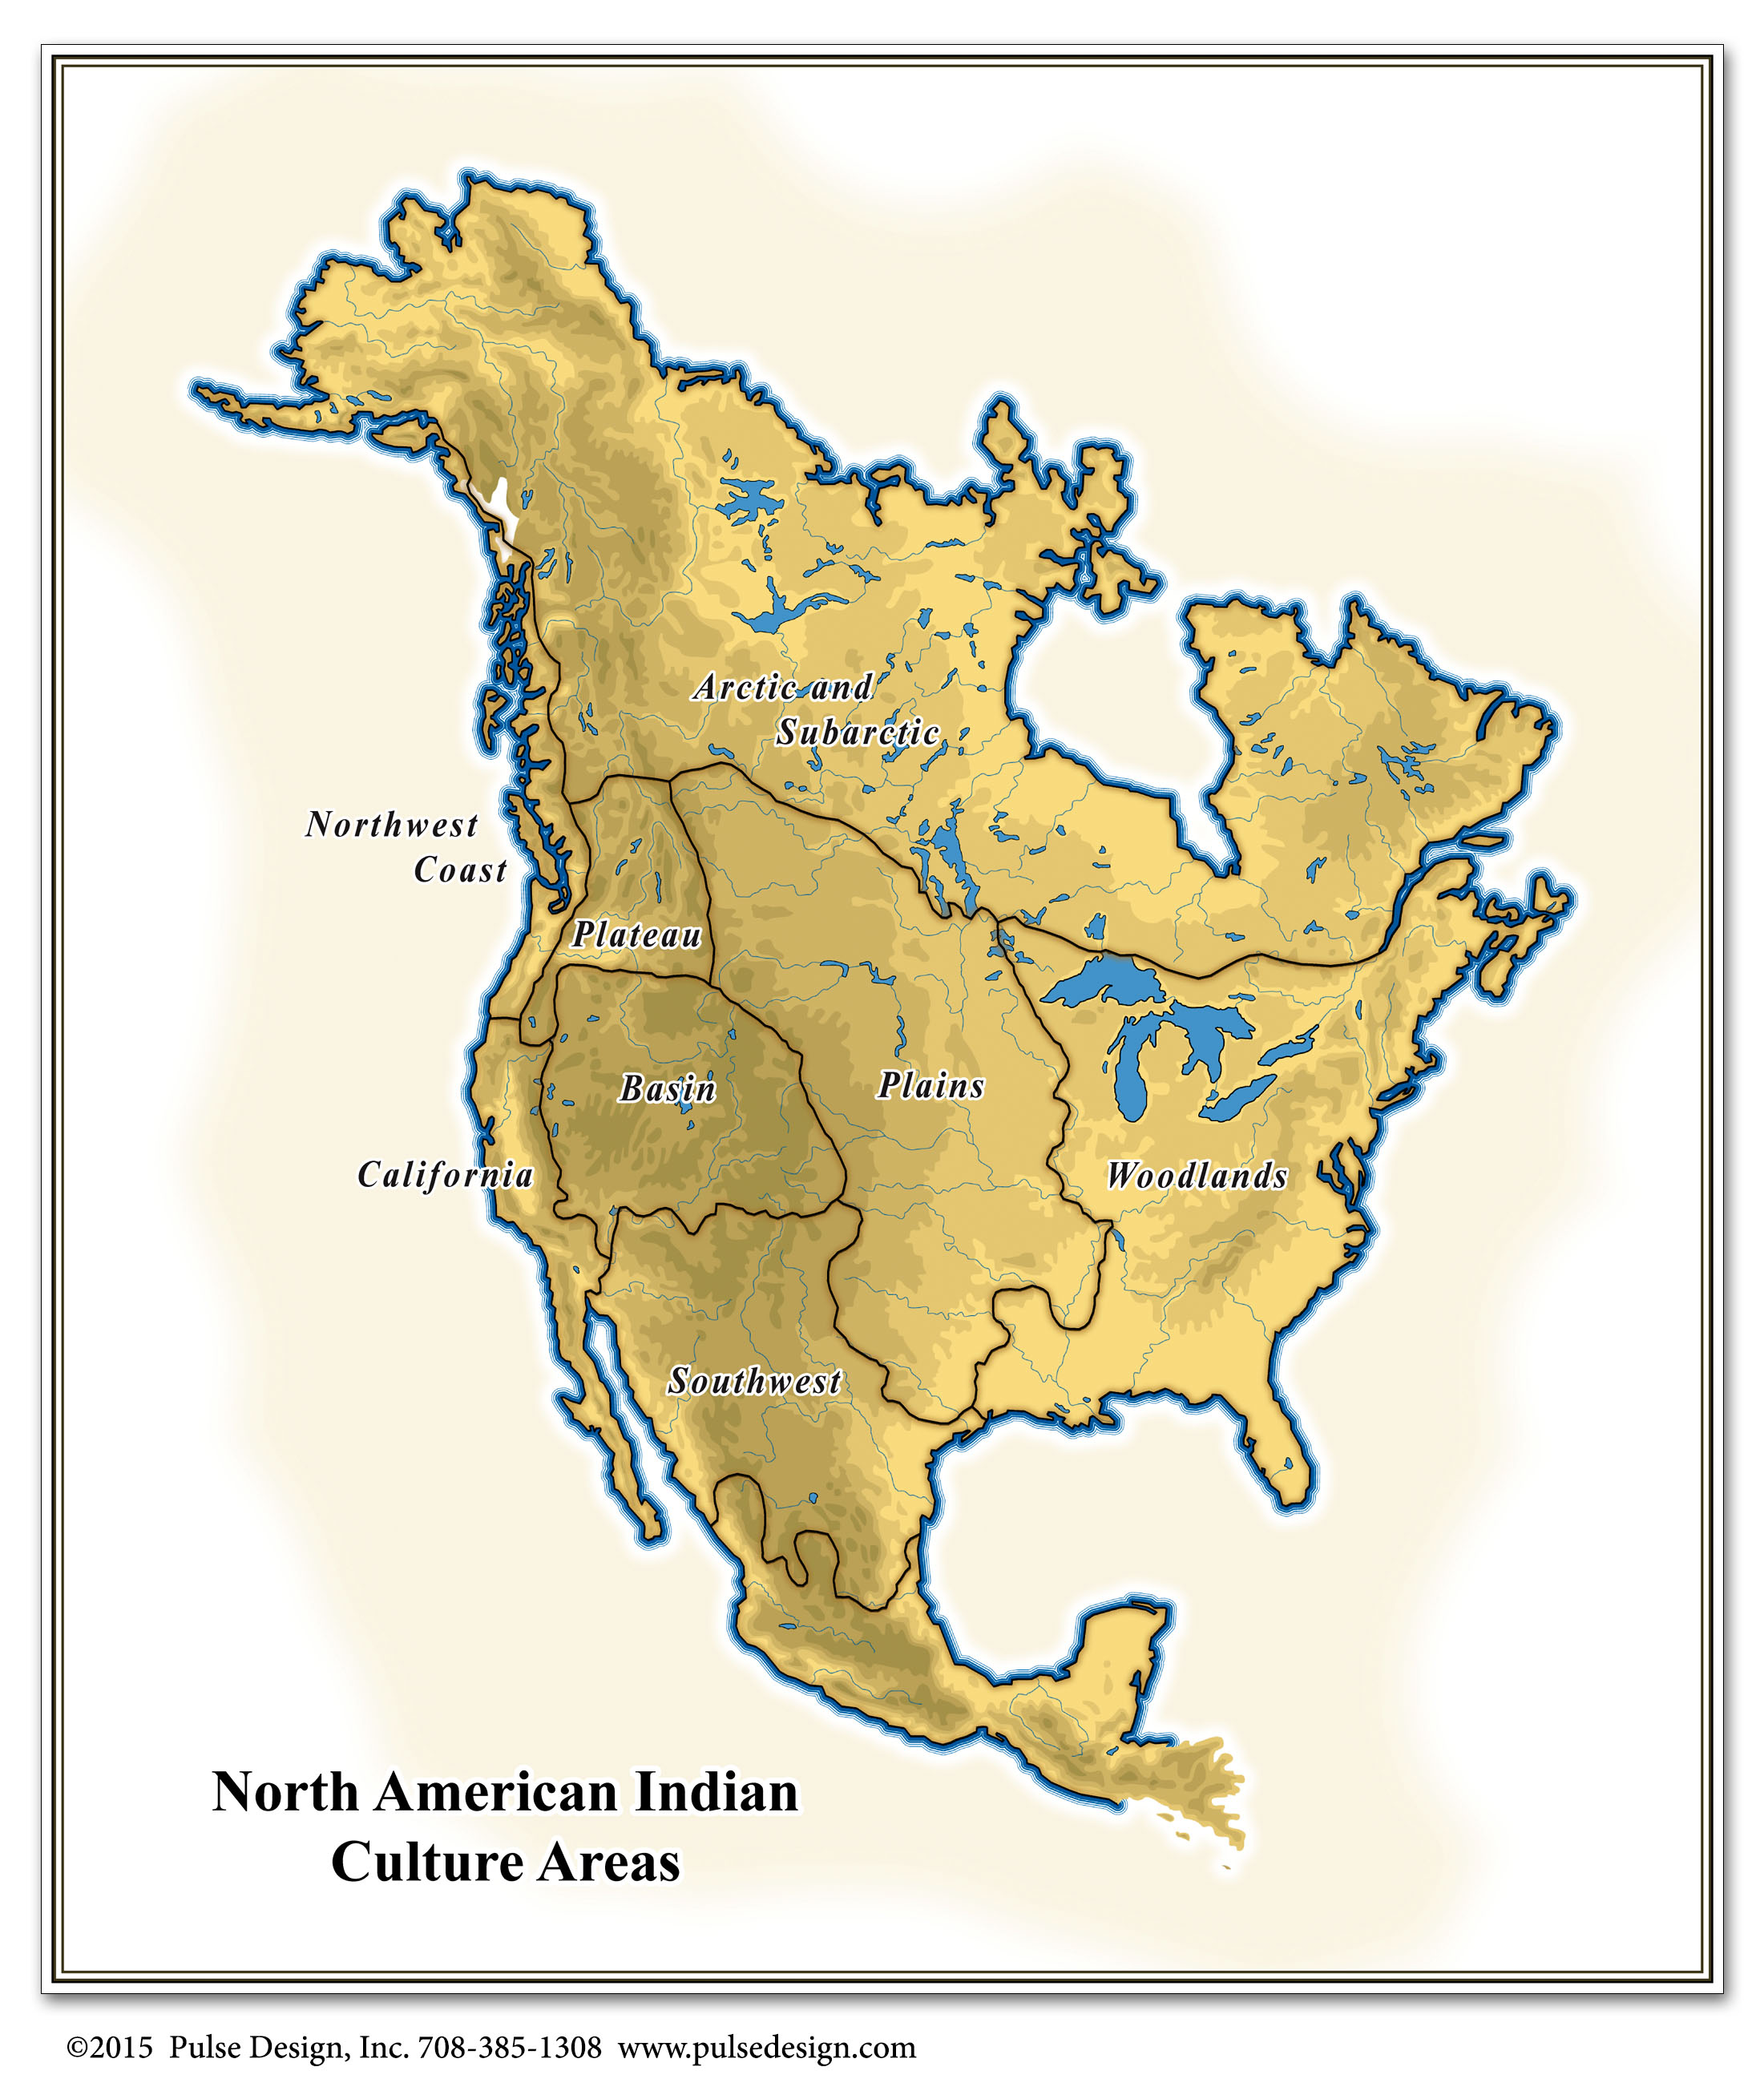 map-historic-mitchell-indian-museum-pulse-design-inc.jpg